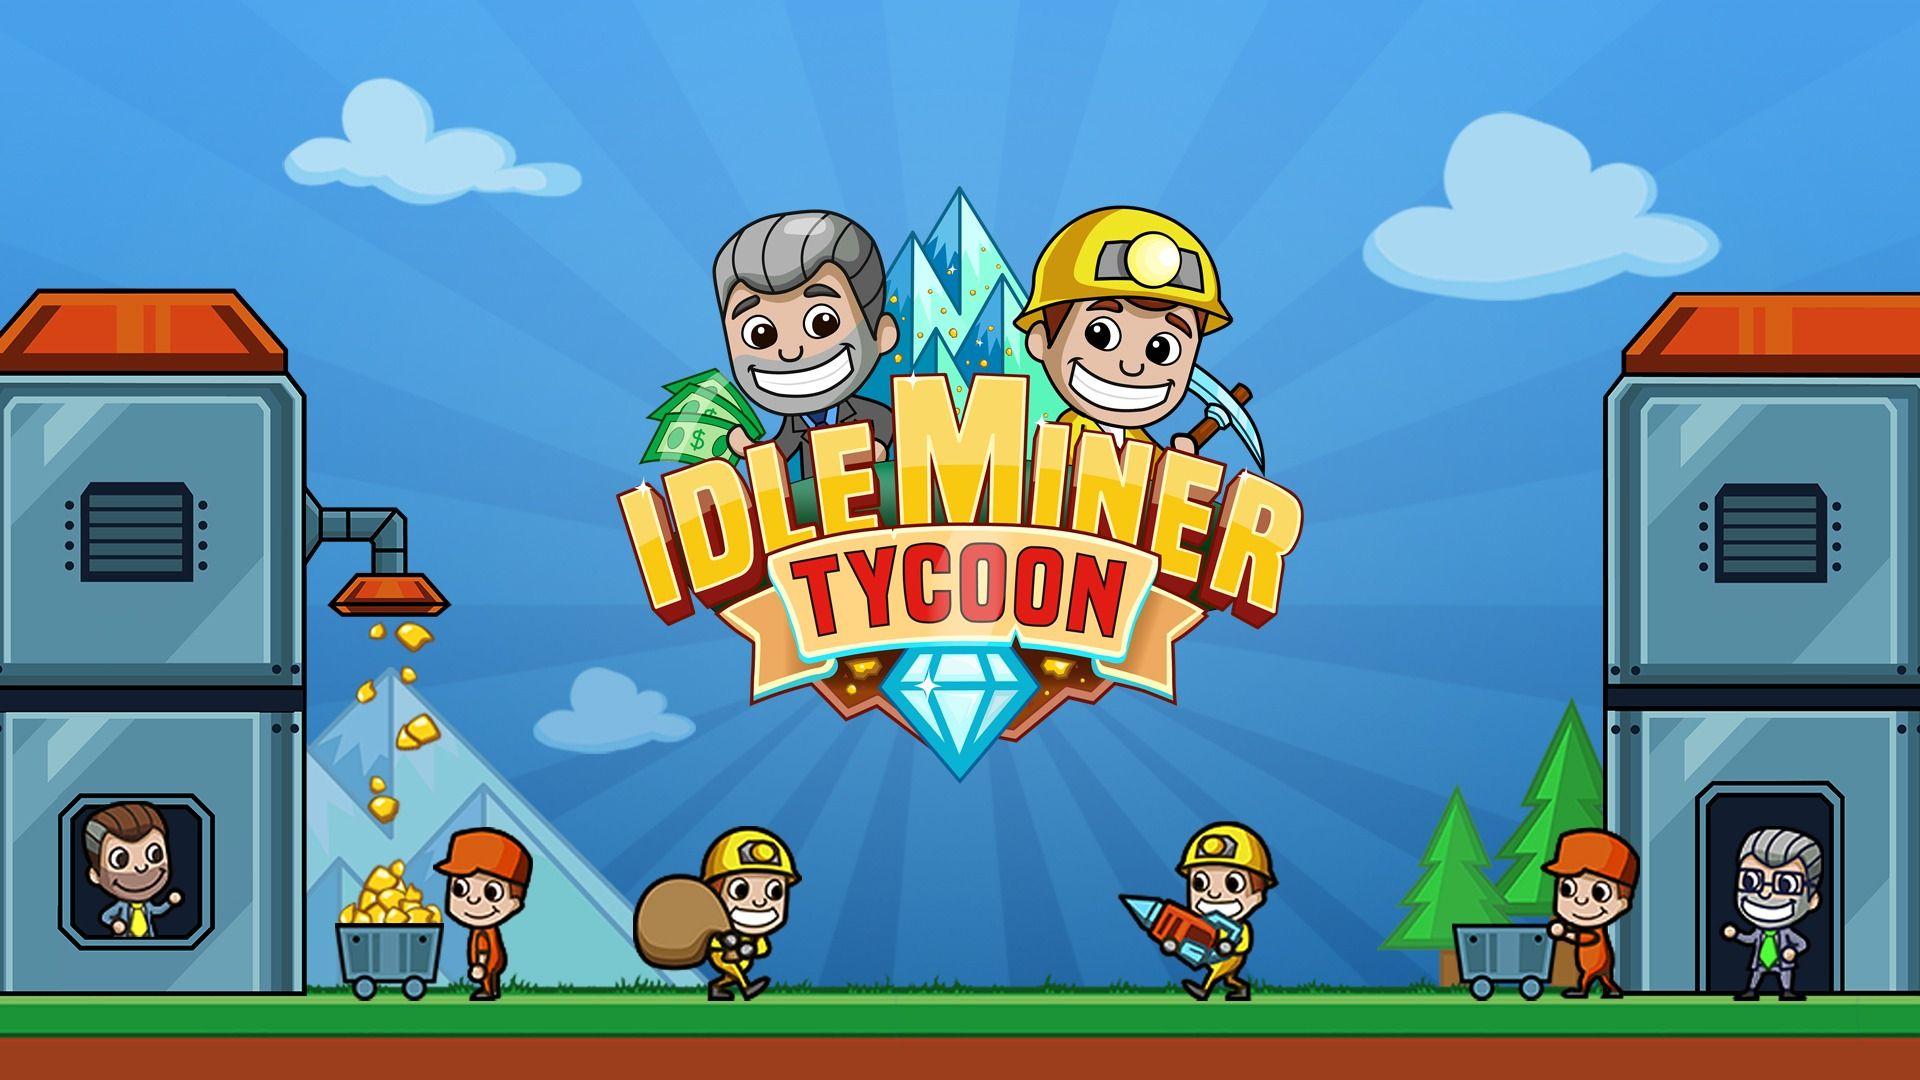 Idle Miner Tycoon v2.5.0 Mod APK For Android | Simulation ...